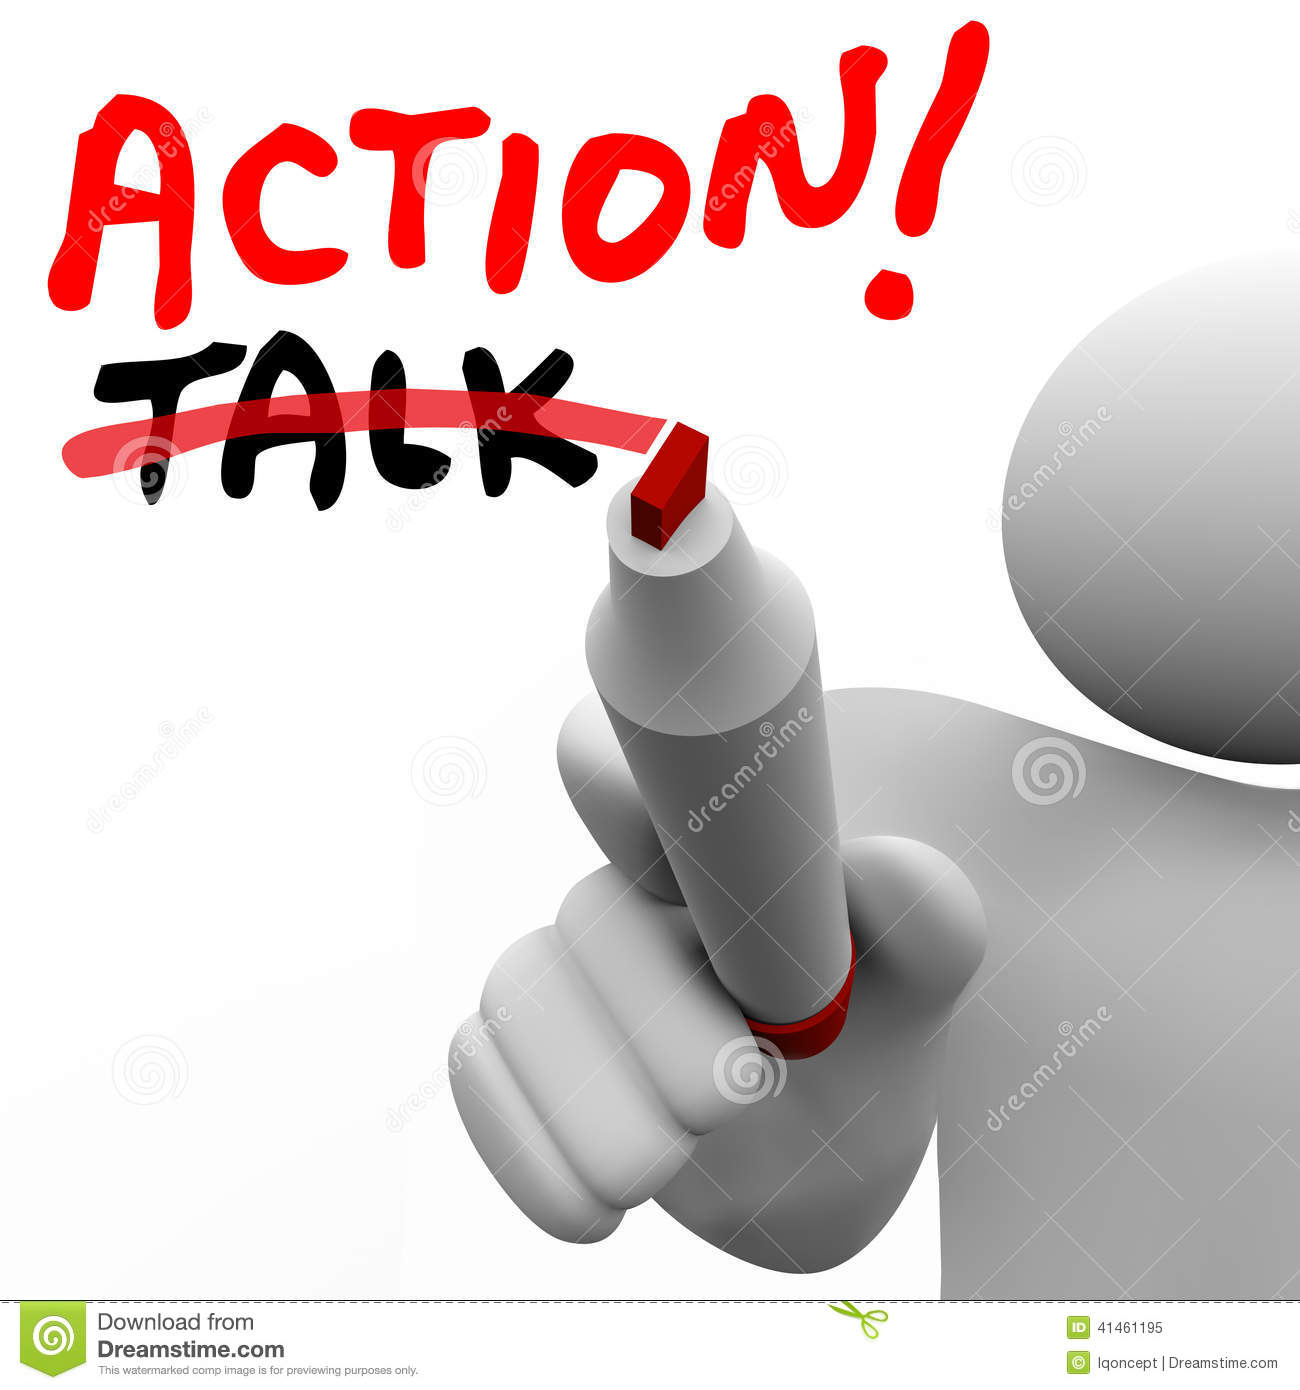 actions vs thoughts essay The most crucial part of your essay is the introduction: it can tell readers how well your thoughts are put together, how well organized your.